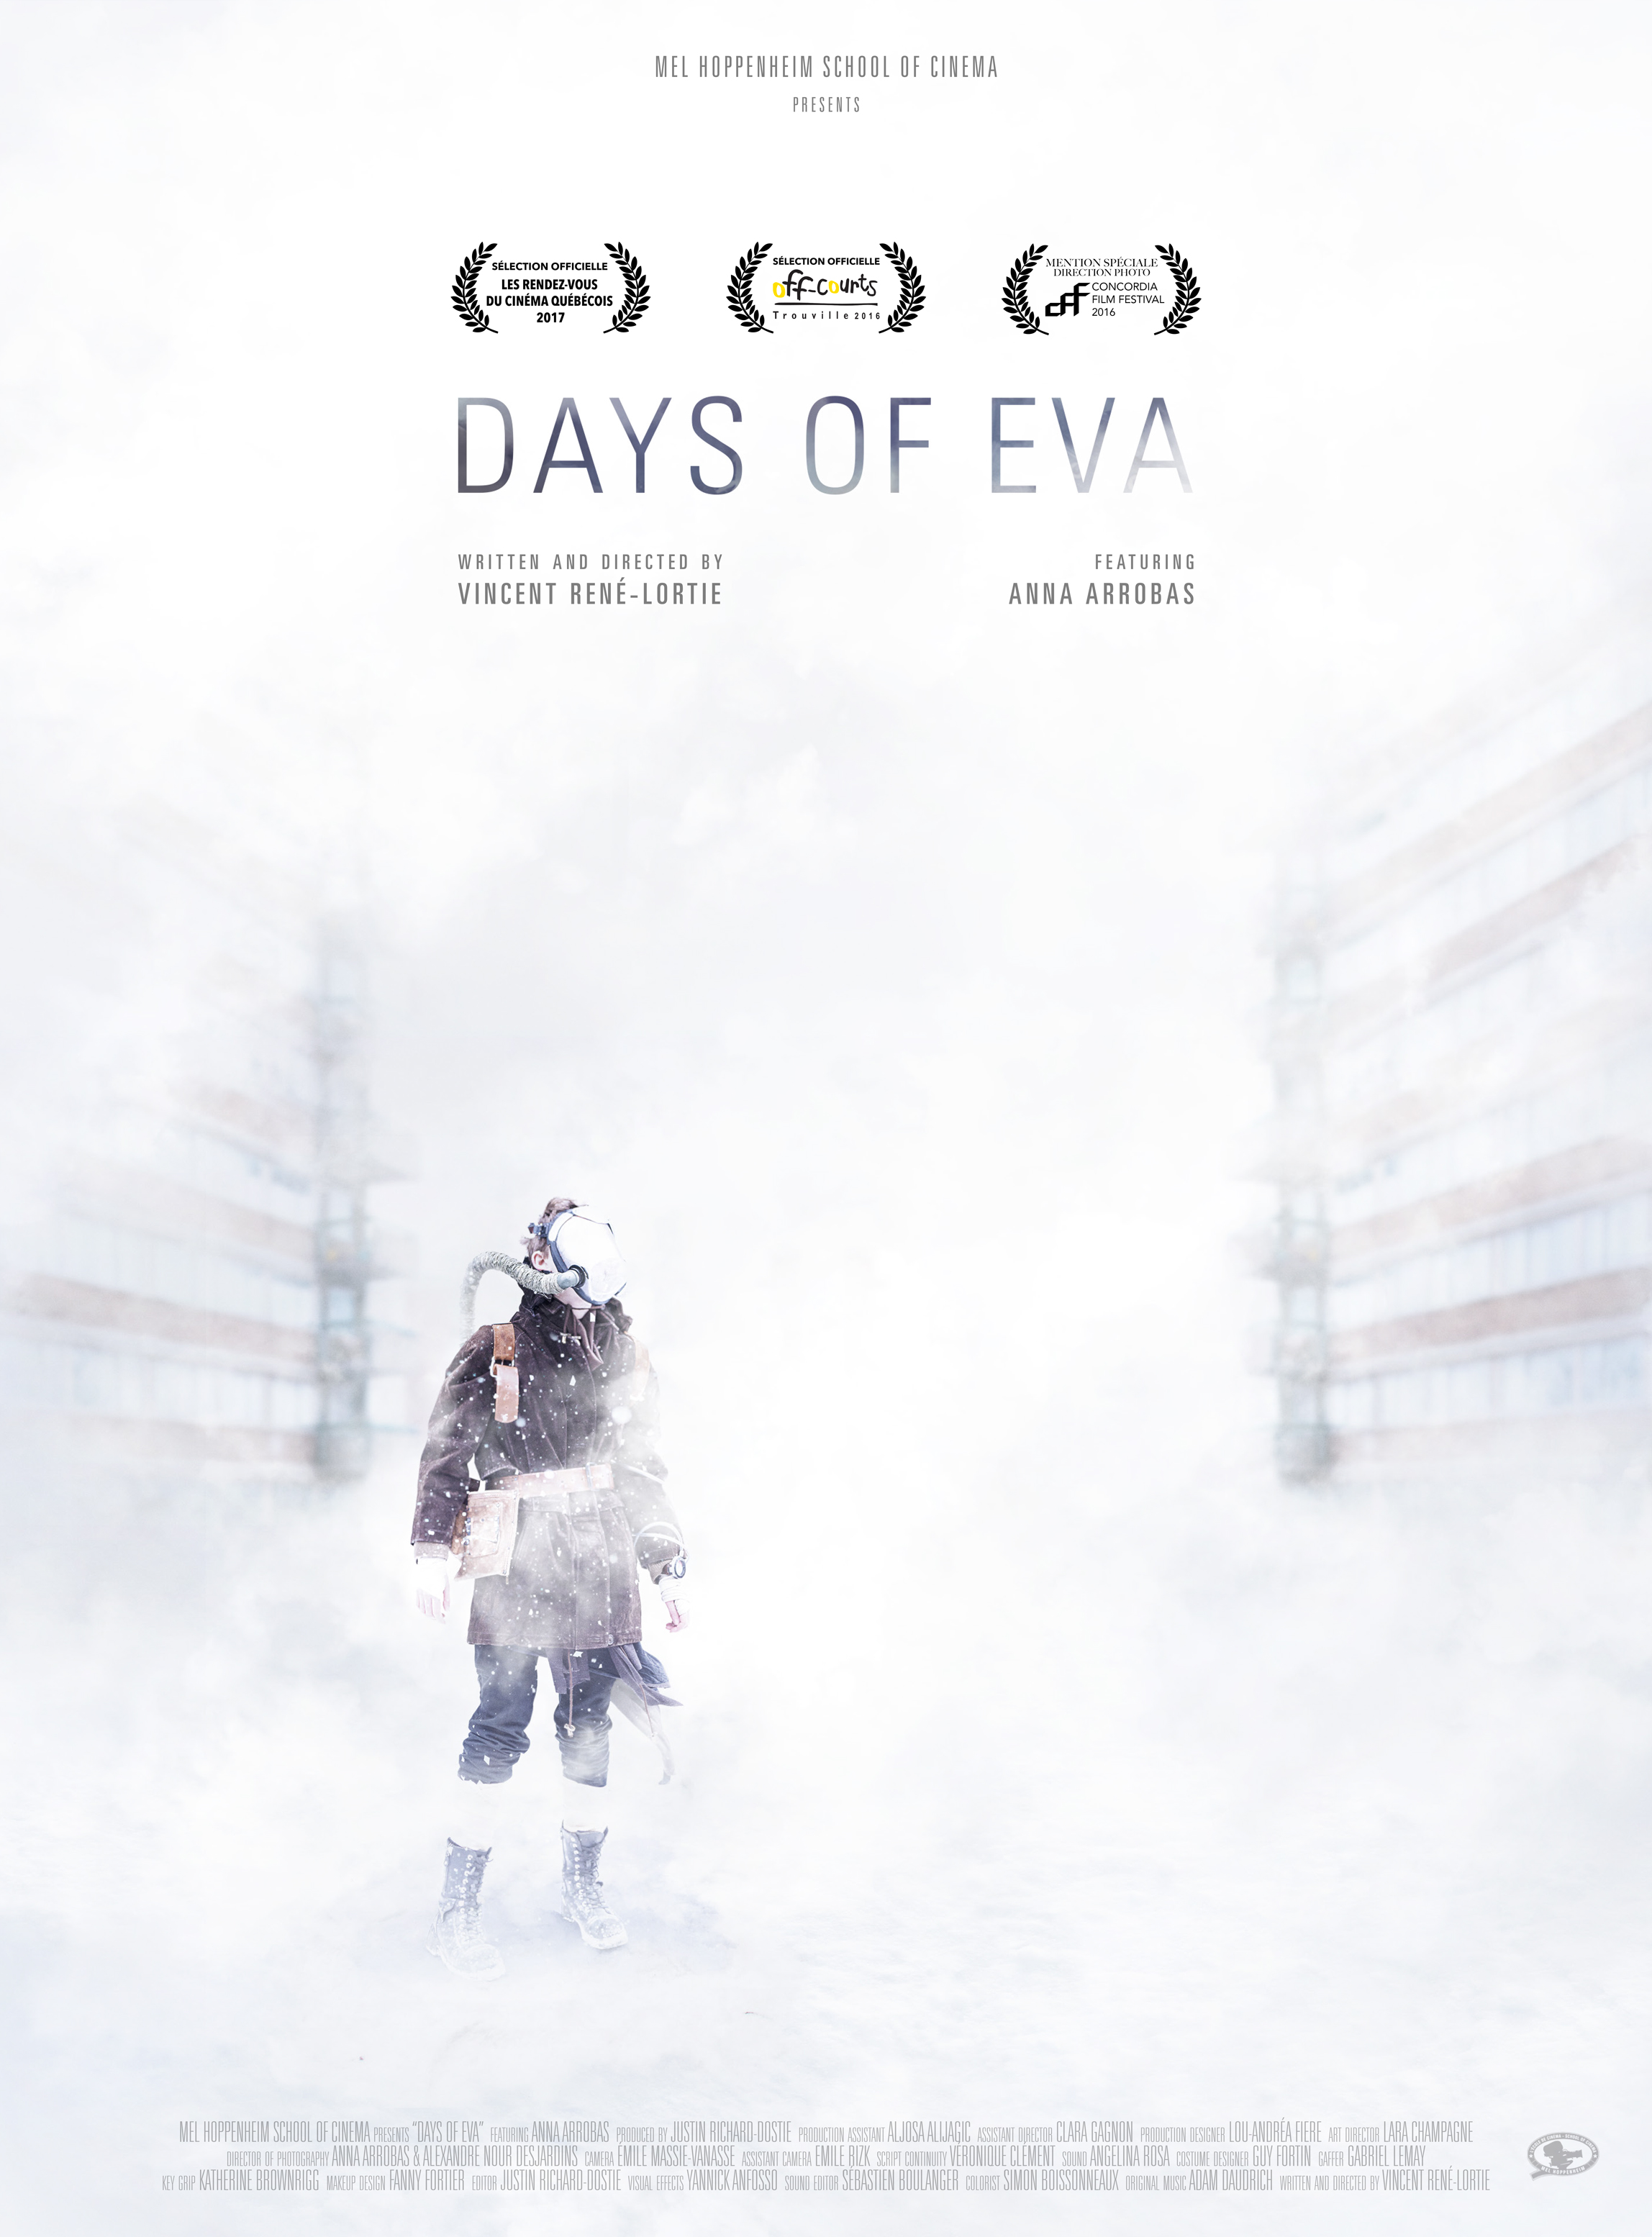 Days of Eva (2016) - Sci-fiSynopsis For the past 11 years, Eva has lived alone in a cold, gloomy, dark, wintery, post-apocalyptical universe. She has grown up in the middle of a gigantic abandoned apartment complex, twin to an adjacent building. In this world, air is no longer breathable. Eva survives off of her last oxygen reserves, but her time has run out. Eva only has a day left, and all hope for a better world has now disappeared.Director : Vincent René-LortieProducer : Justin Richard-DostieCinematographer : Alexandre Nour & Anna Arrobas FESTIVALSOFF-COURTS TROUVILLE 2016 LES RENDEZ-VOUS DU CINÉMA QUÉBÉCOIS 2017 CSC AWARDS - NOMINATED FOR BEST CINEMATOGRAPHY / STUDENT CCE - BEST EDITING /STUDENT